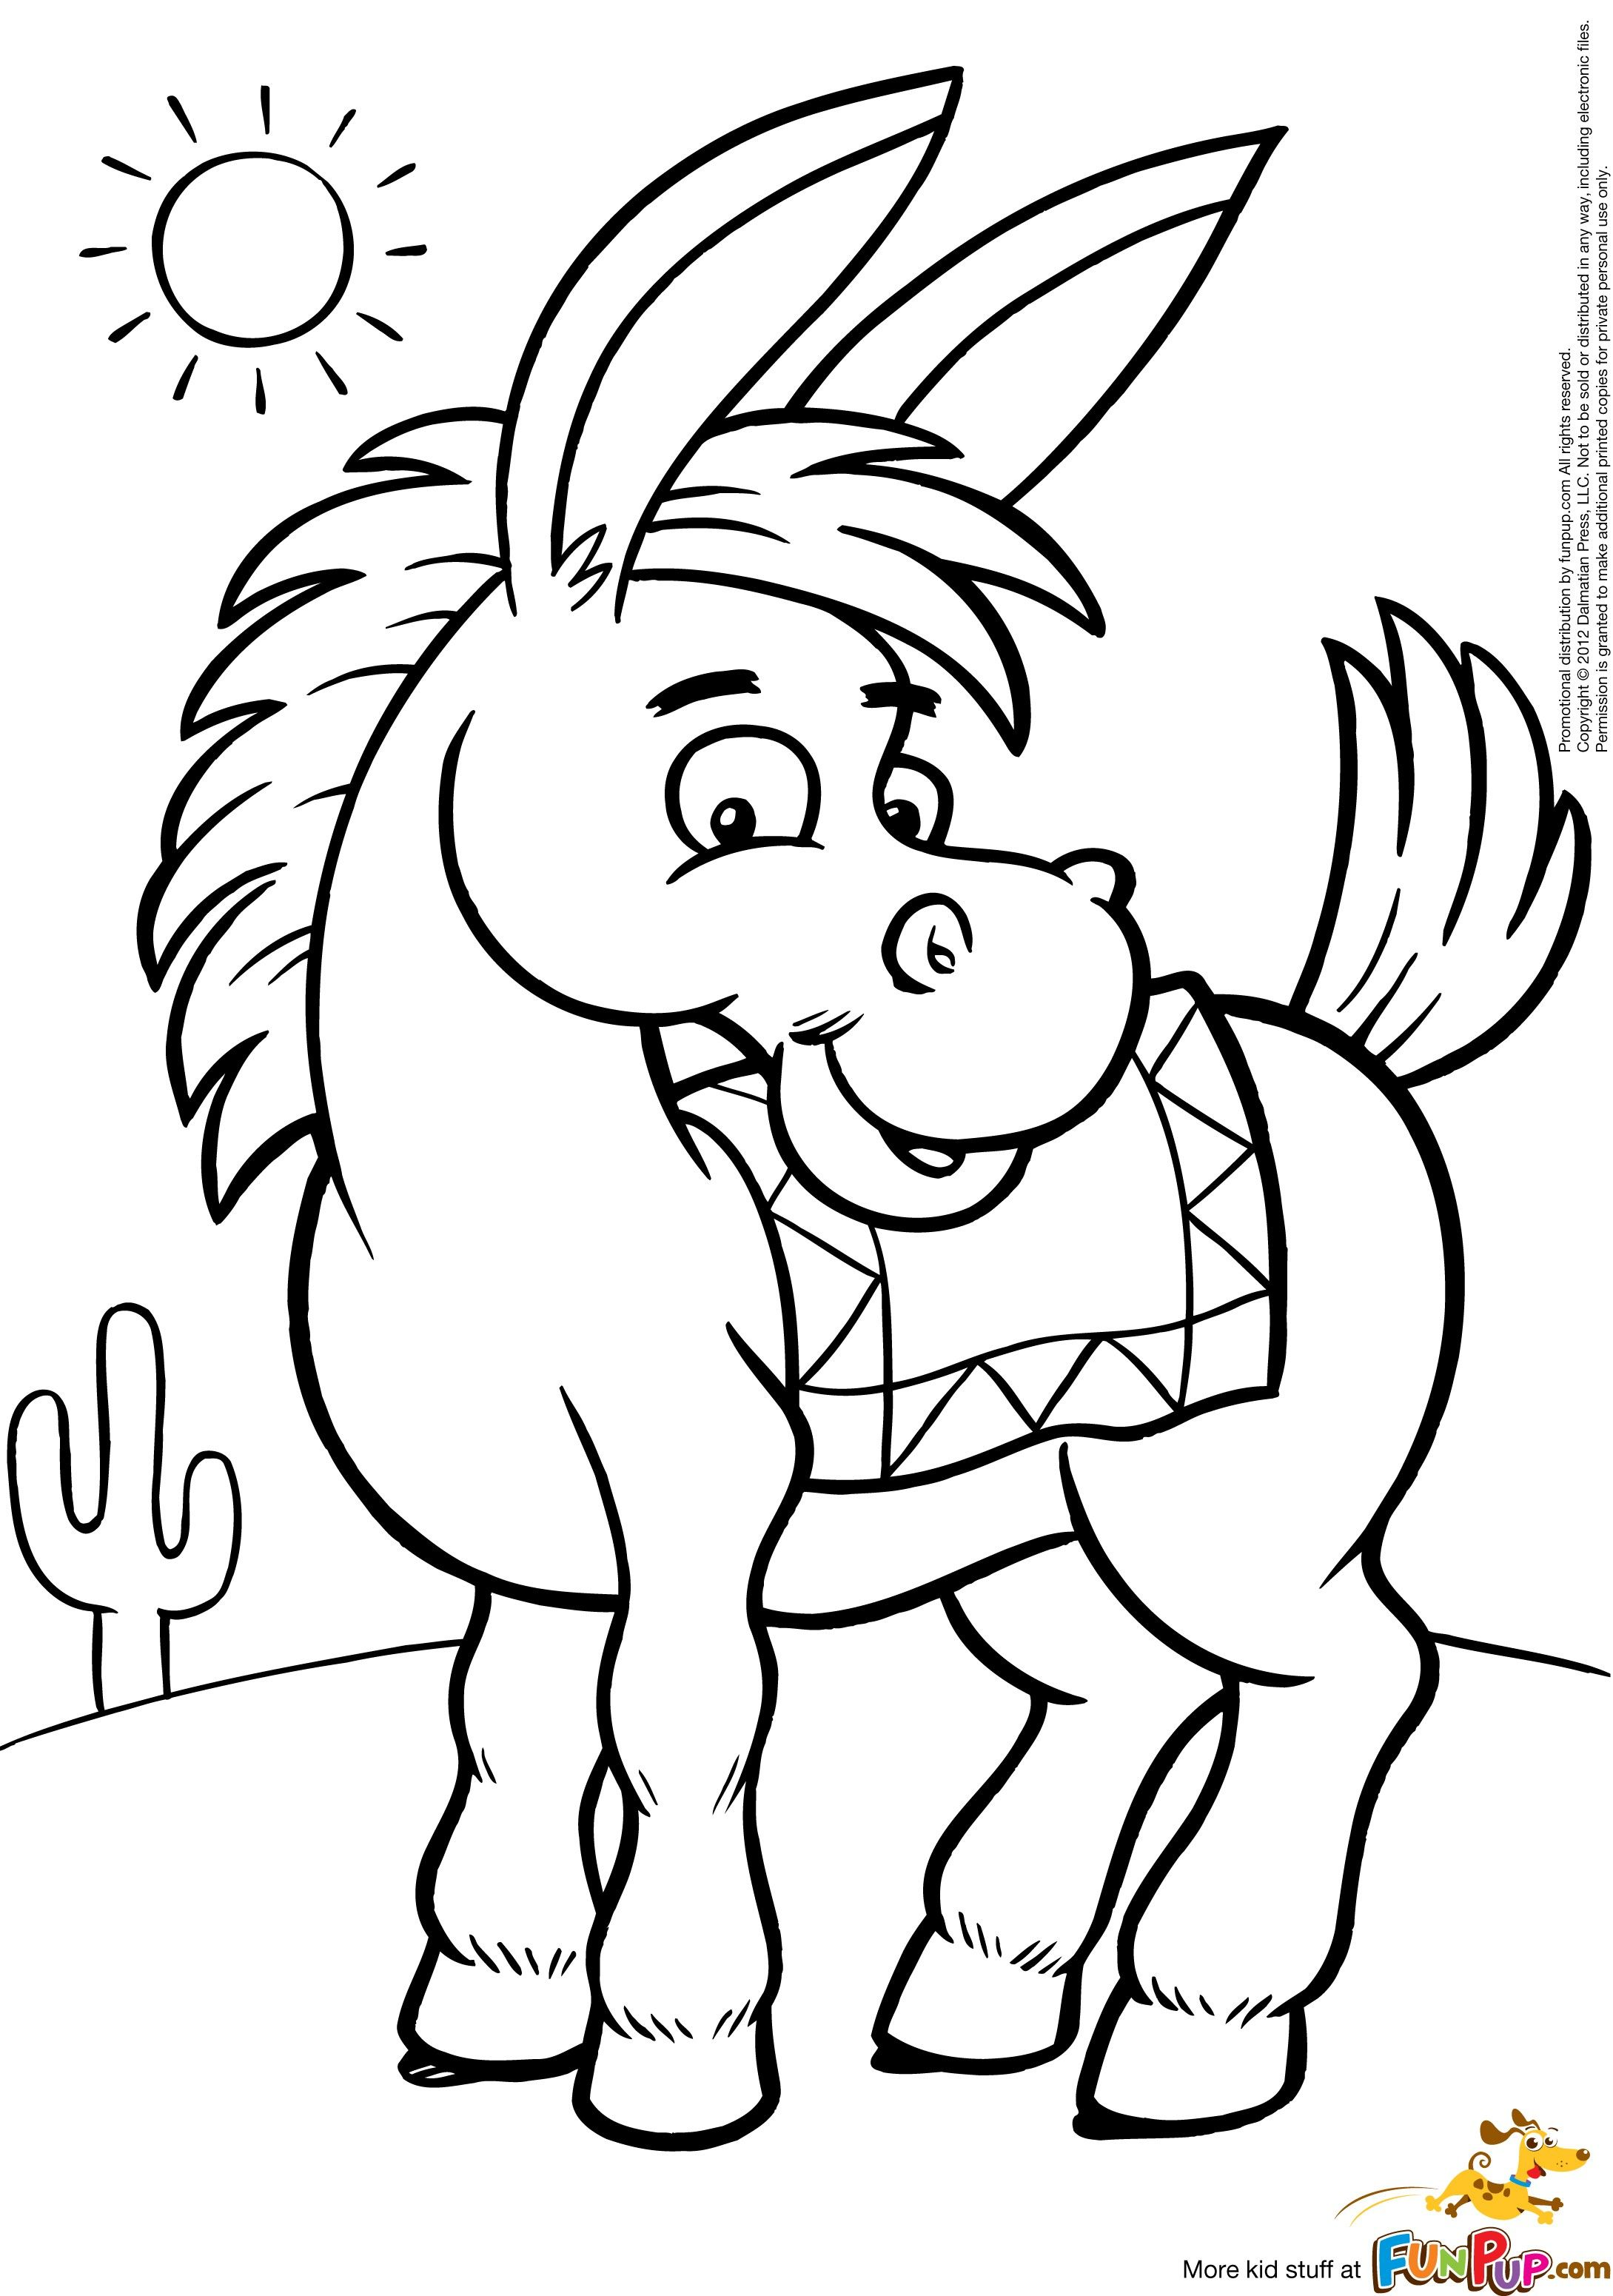 Donkey Coloring Pages Printable Sketch Coloring Page Nativity Coloring Pages Animal Coloring Pages Farm Animal Coloring Pages